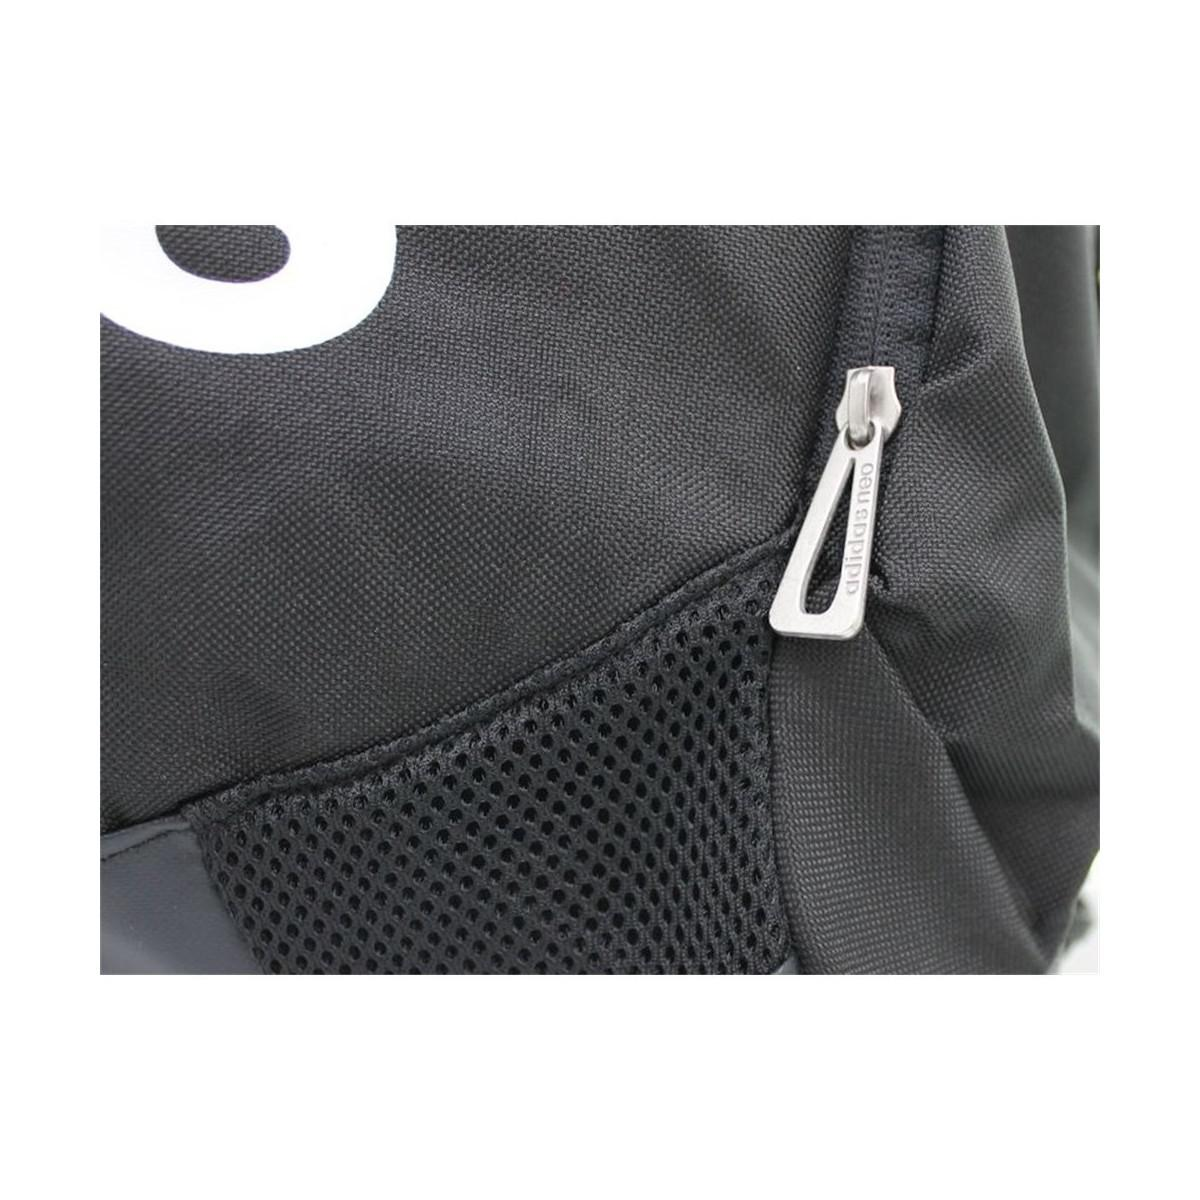 a0a119c7a84e adidas Daily Gymbag Women s Sports Bag In Black in Black - Lyst